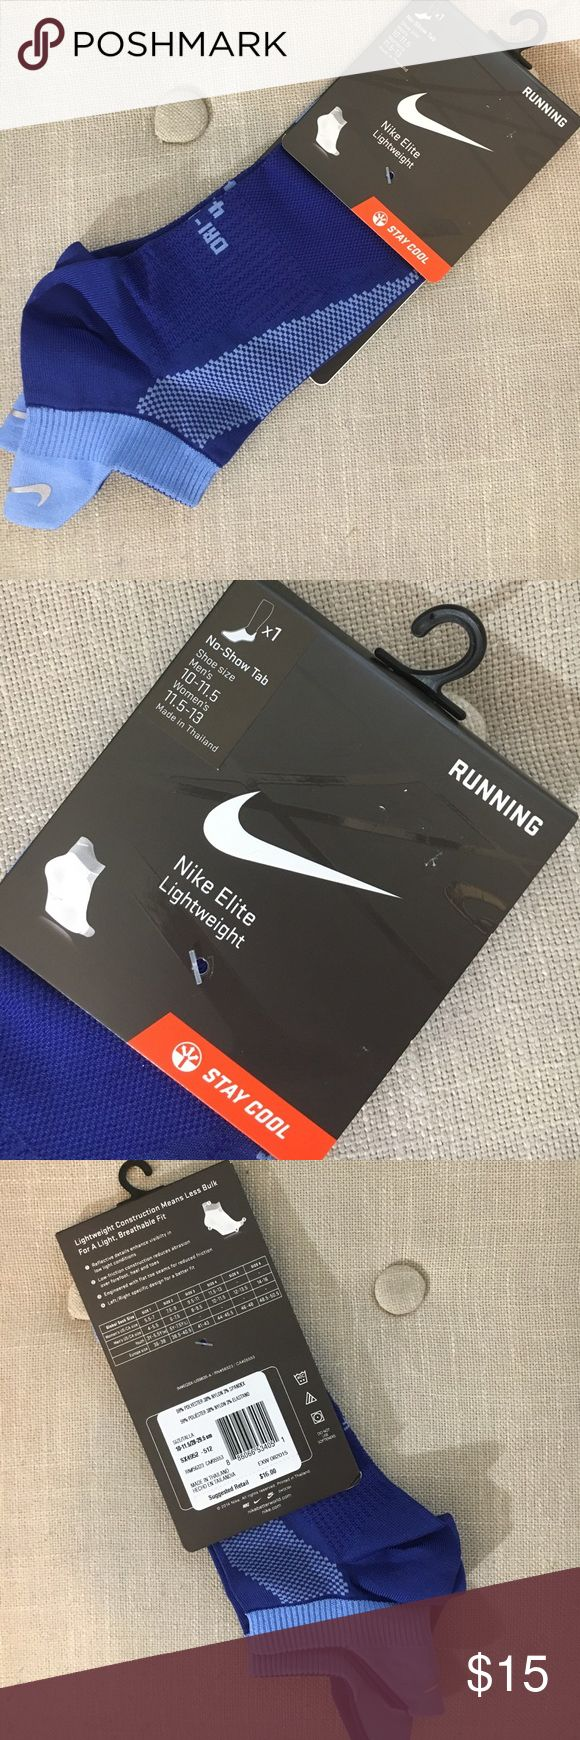 Nike No-Show Tab Running Socks These Nike No-Show Tab Running Socks are Lightweight and new, never been worn! Size is Men's 10-11.5 Or Women's 11.5-13. Color is a very sporty blue and pack includes 1 pair. These are fantastic summer running socks, get them before they're gone! Nike Underwear & Socks Athletic Socks